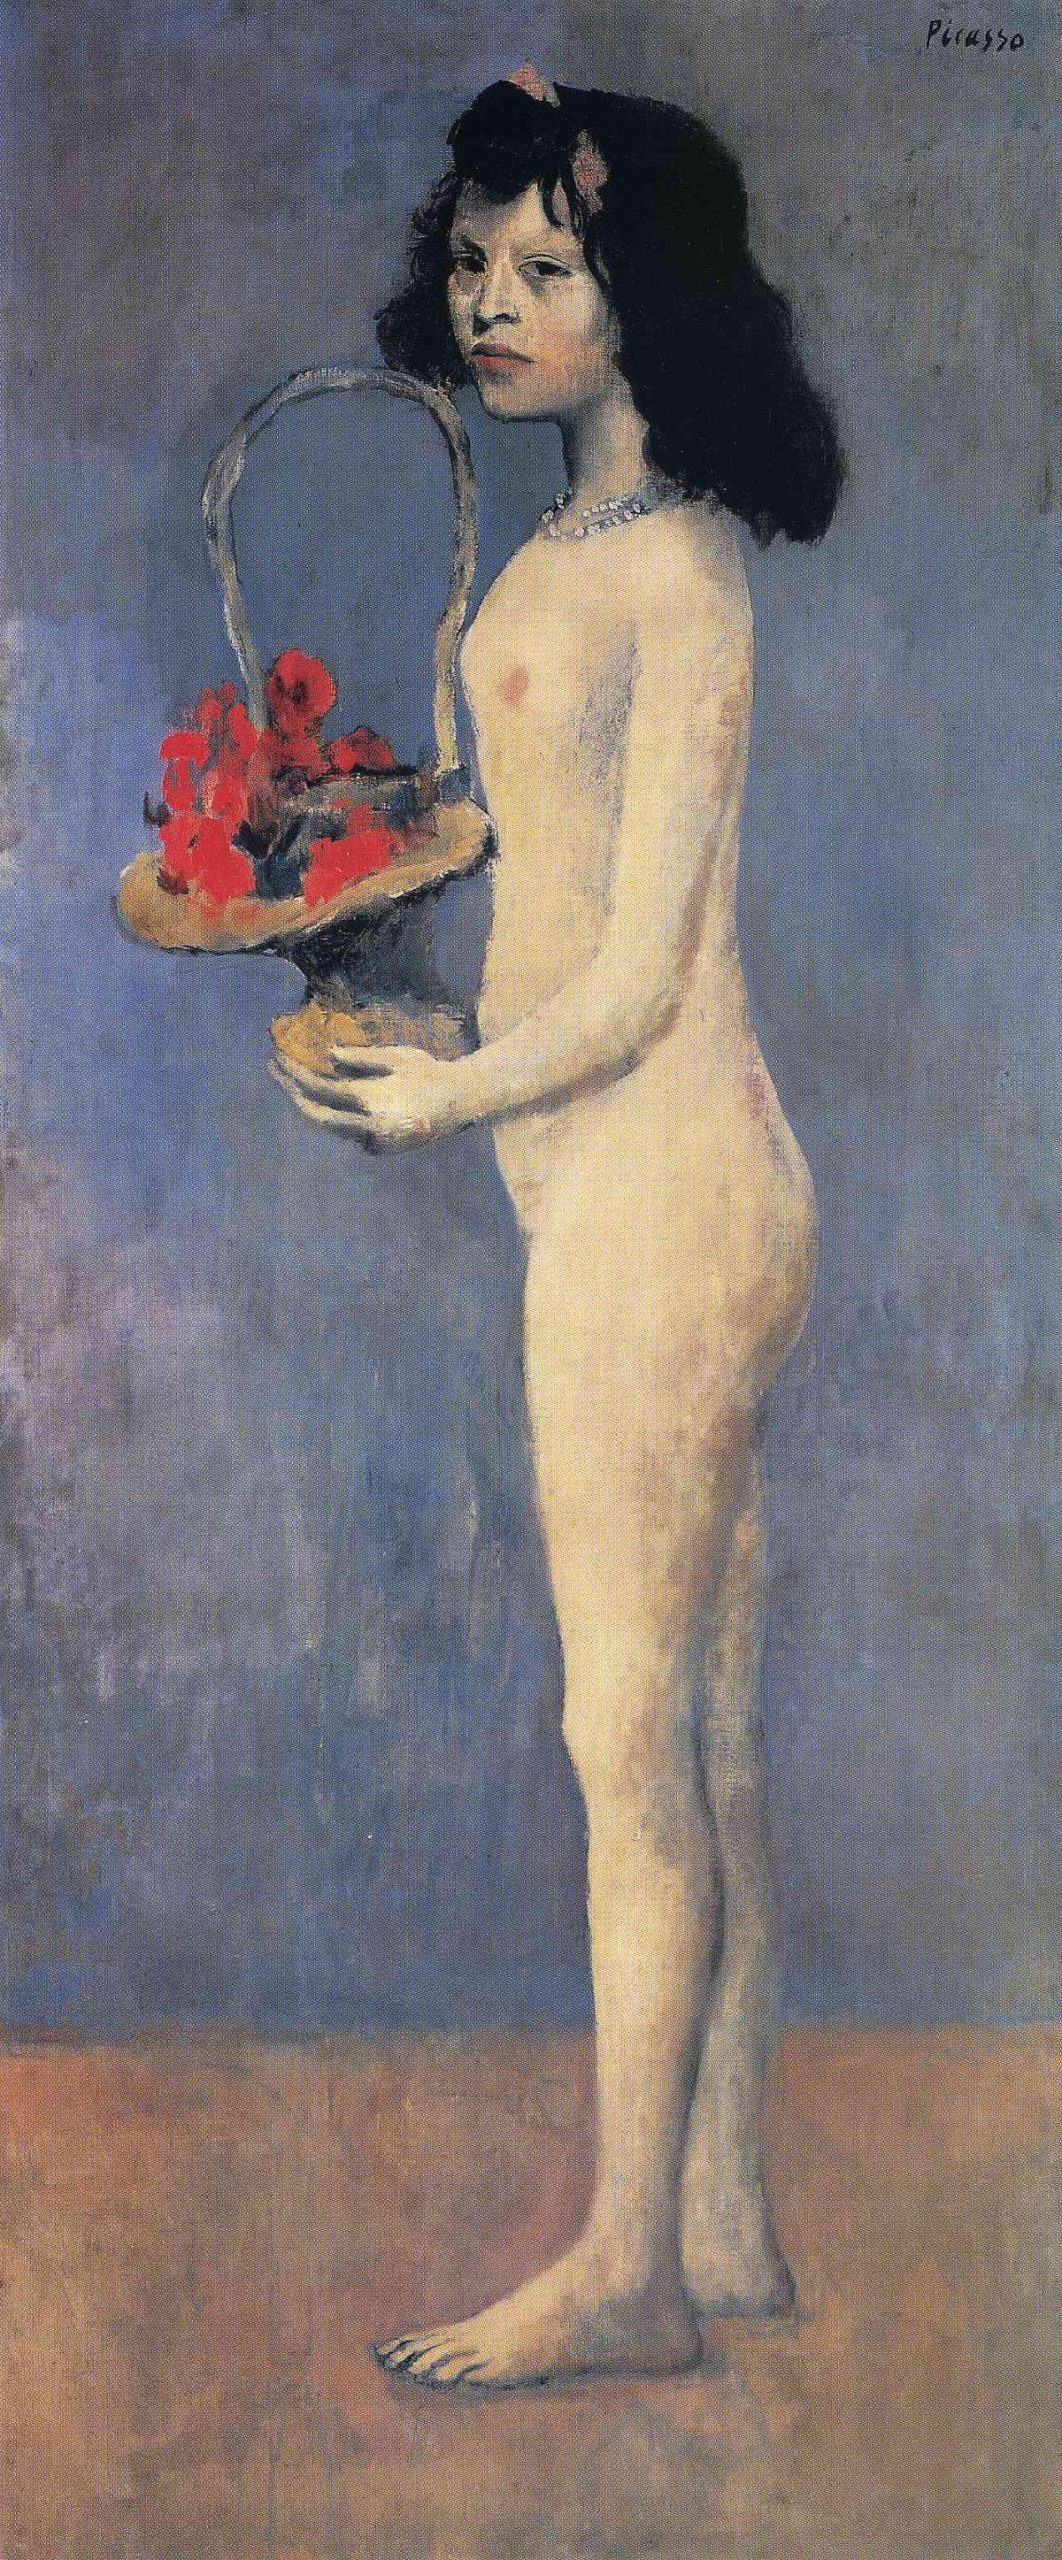 Pablo Picasso, Young Girl with a Flower Basket, 1905